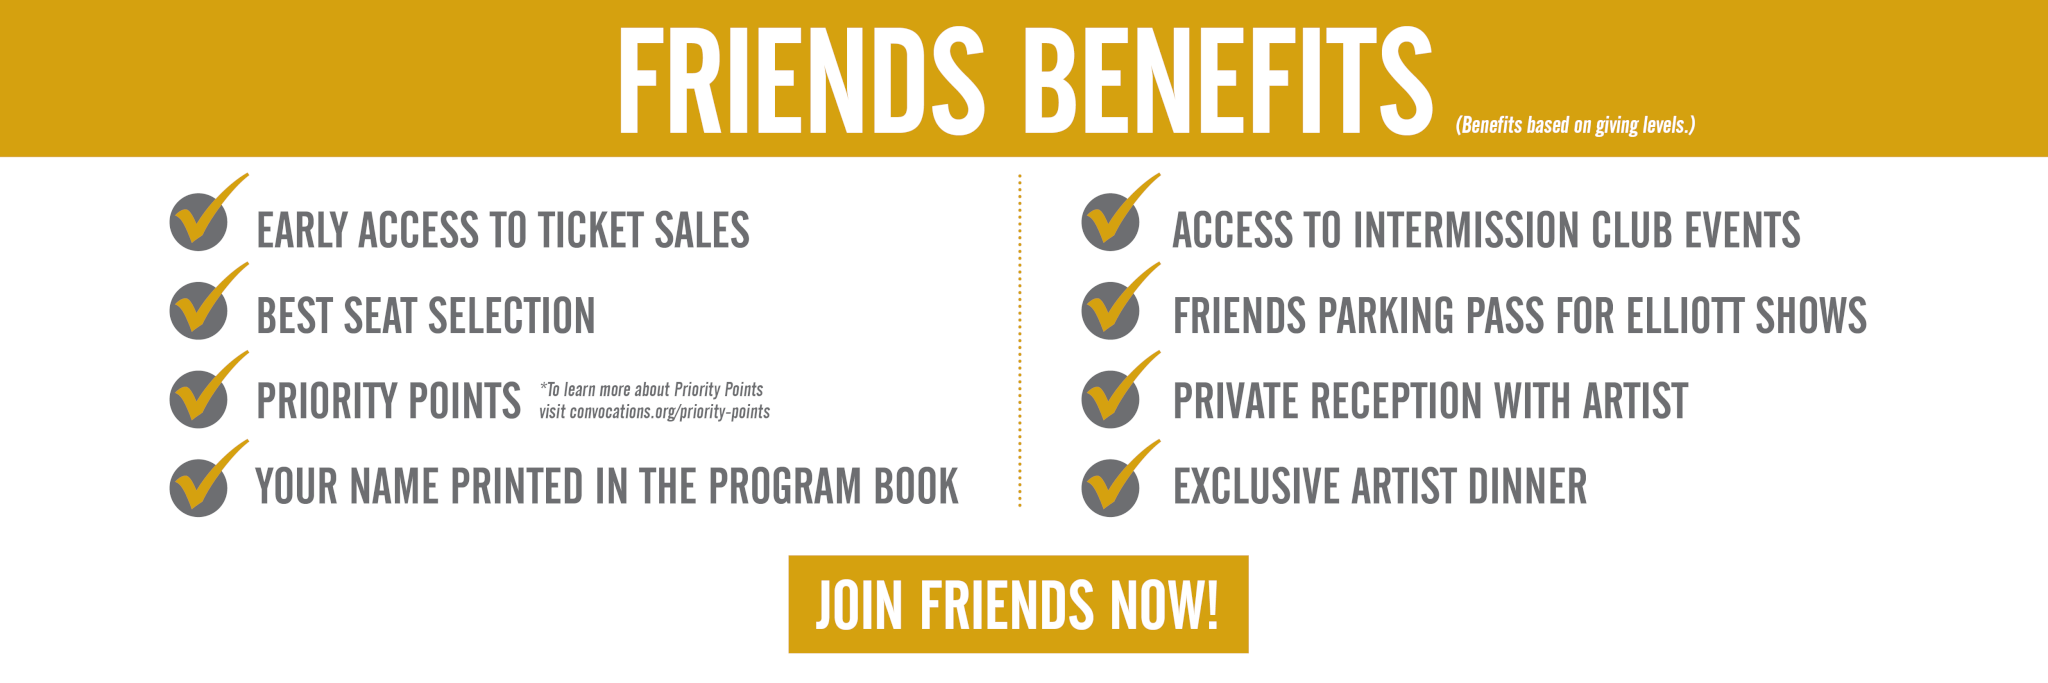 friends benefits (benefits based on giving levels). Early access to ticket sales, best seat selection, Priority points (o learn more about Priority Points visit convocations.org/priority-points), Your name printed in the program book, Access to Intermission Club events, Friends parking pass for Elliott shows, Private reception with artist, Exclusive artist dinner. Join Friends Now!